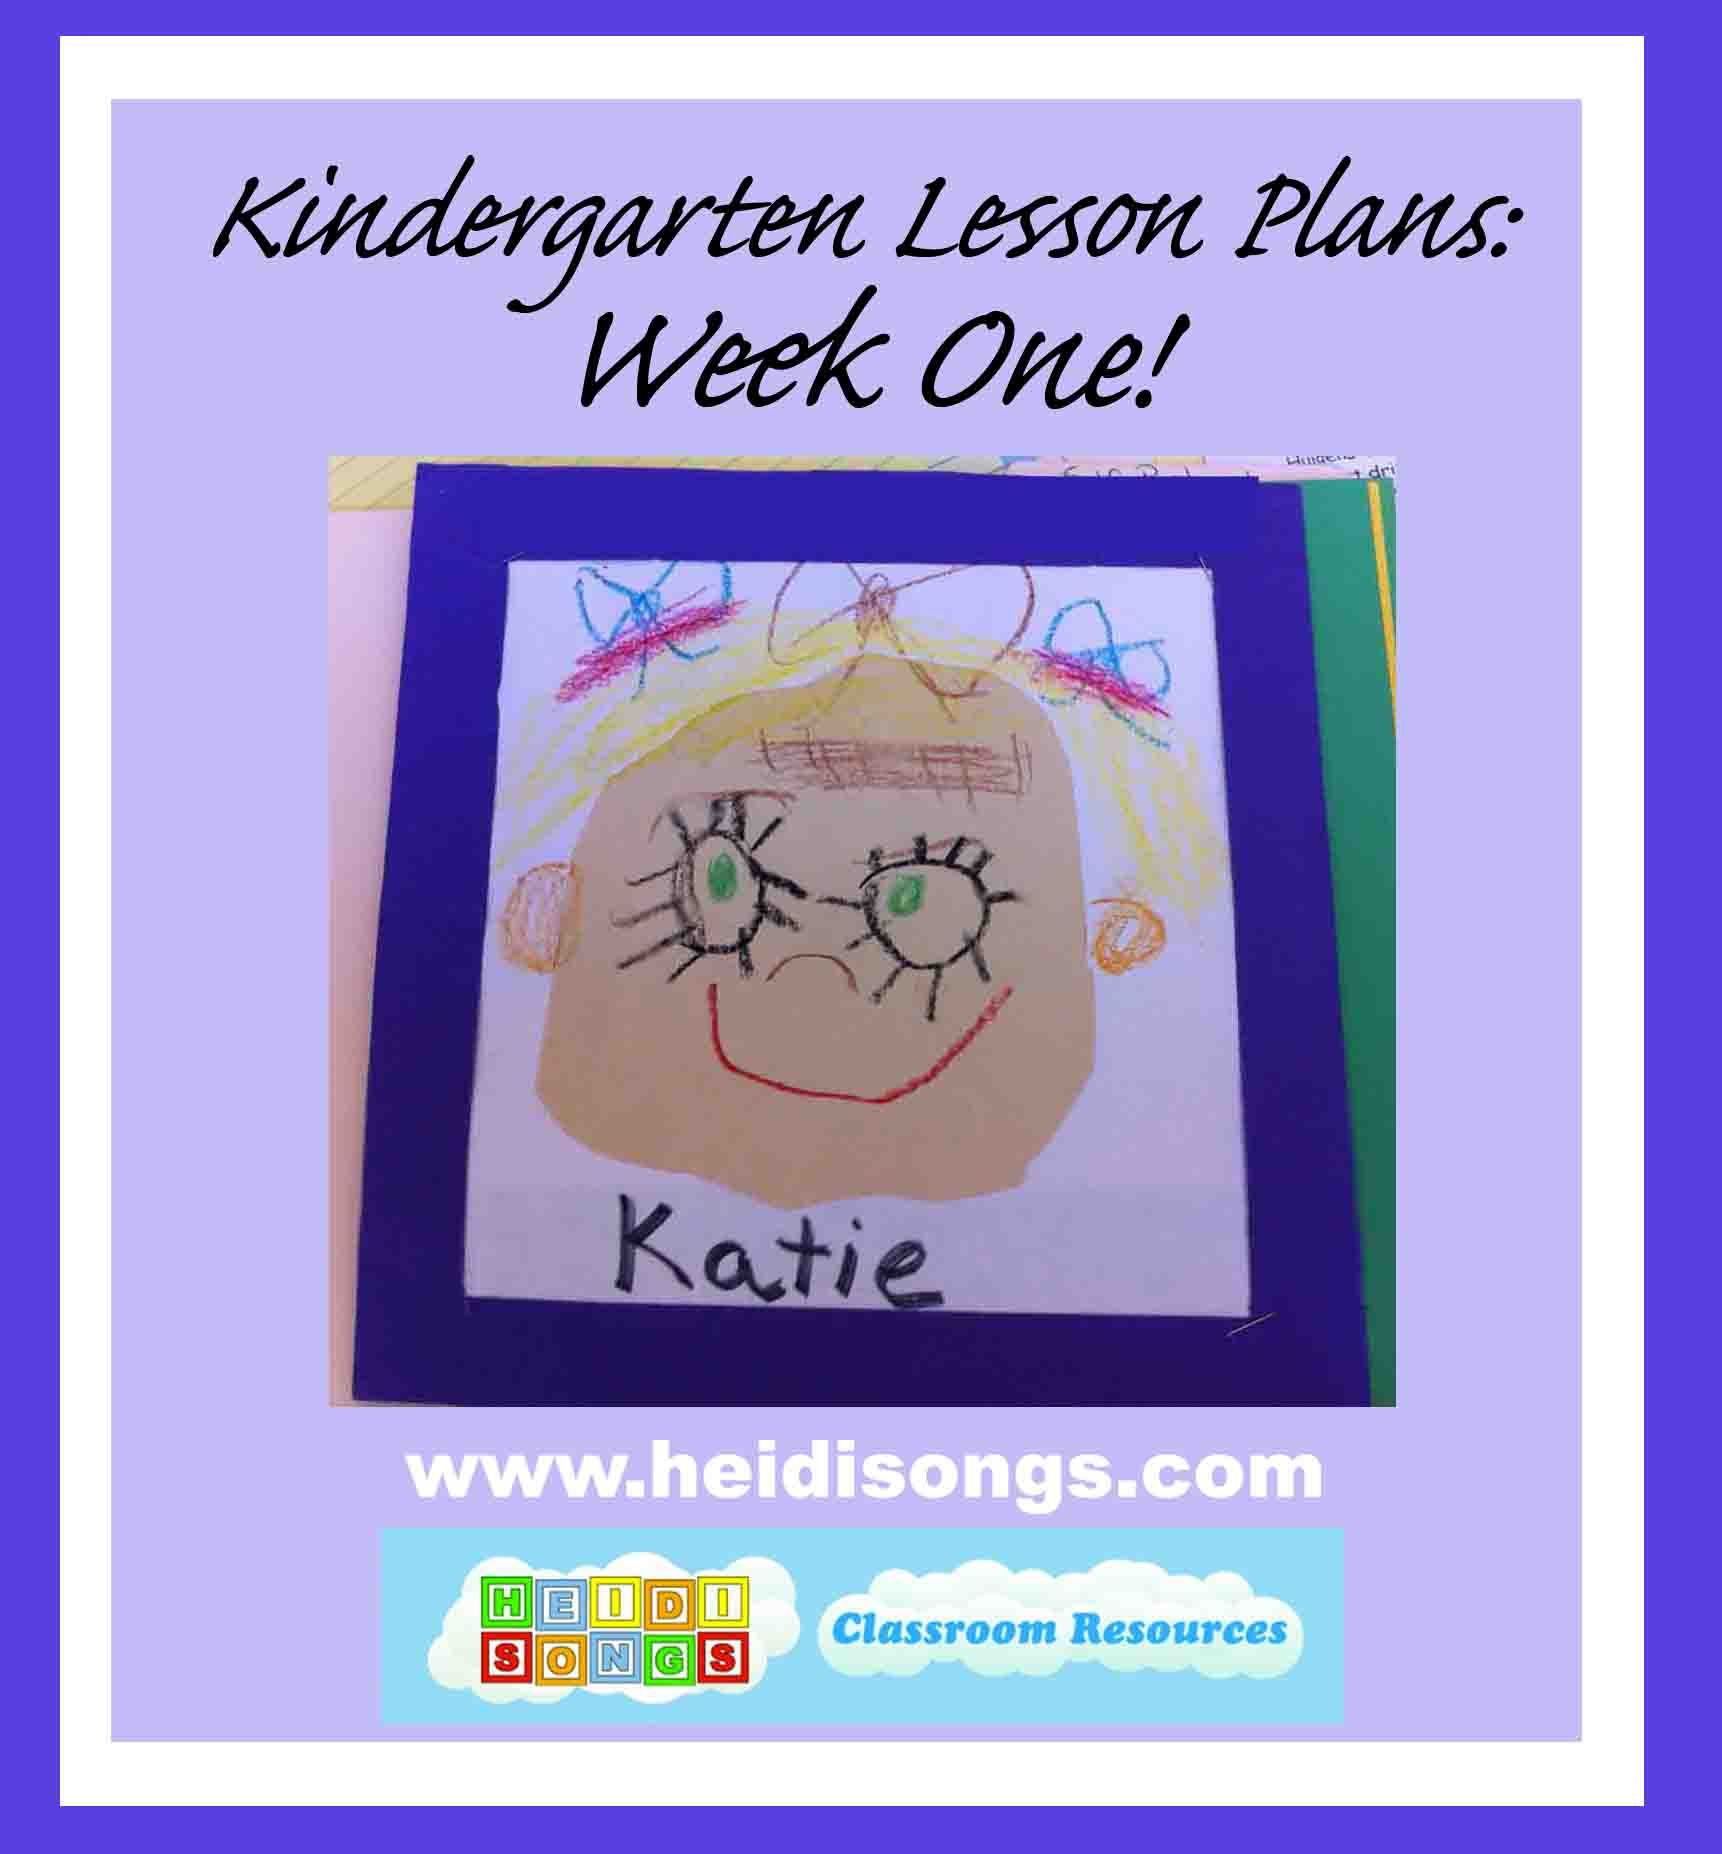 Kindergarten Lesson Plans Week 1